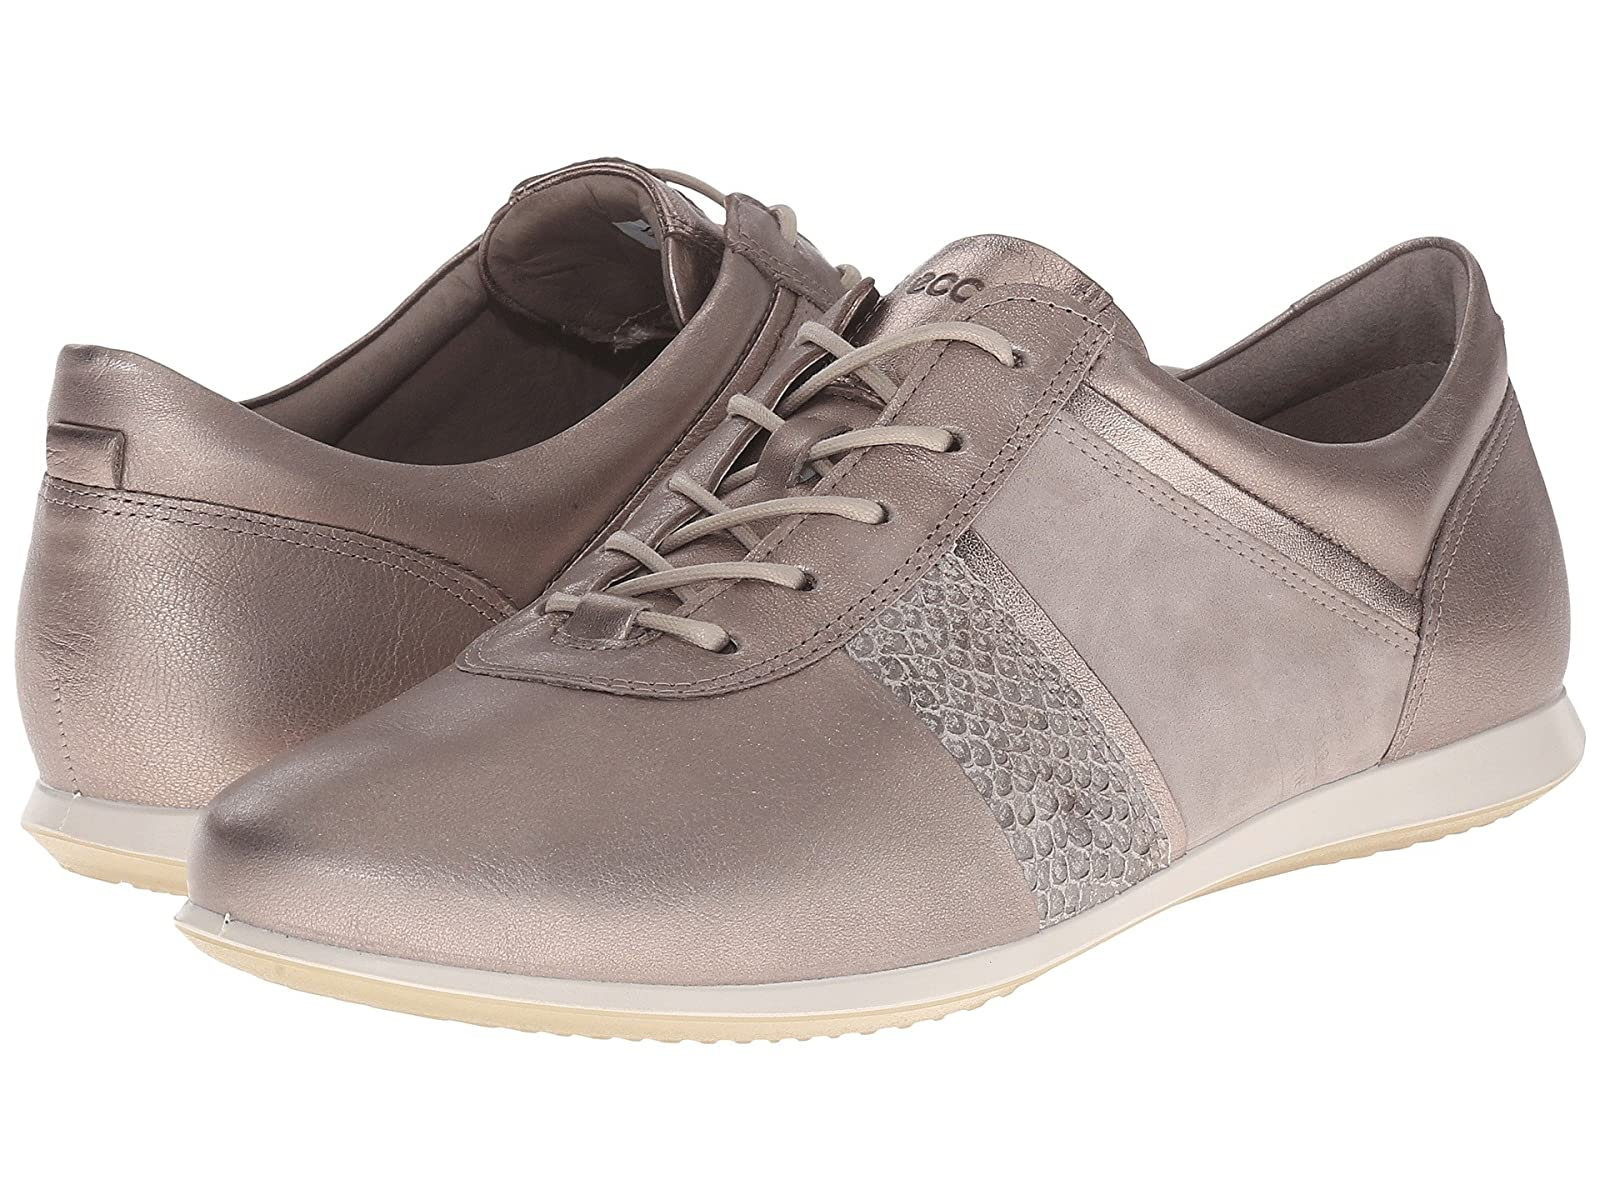 ECCO Touch Modern SneakerCheap and distinctive eye-catching shoes